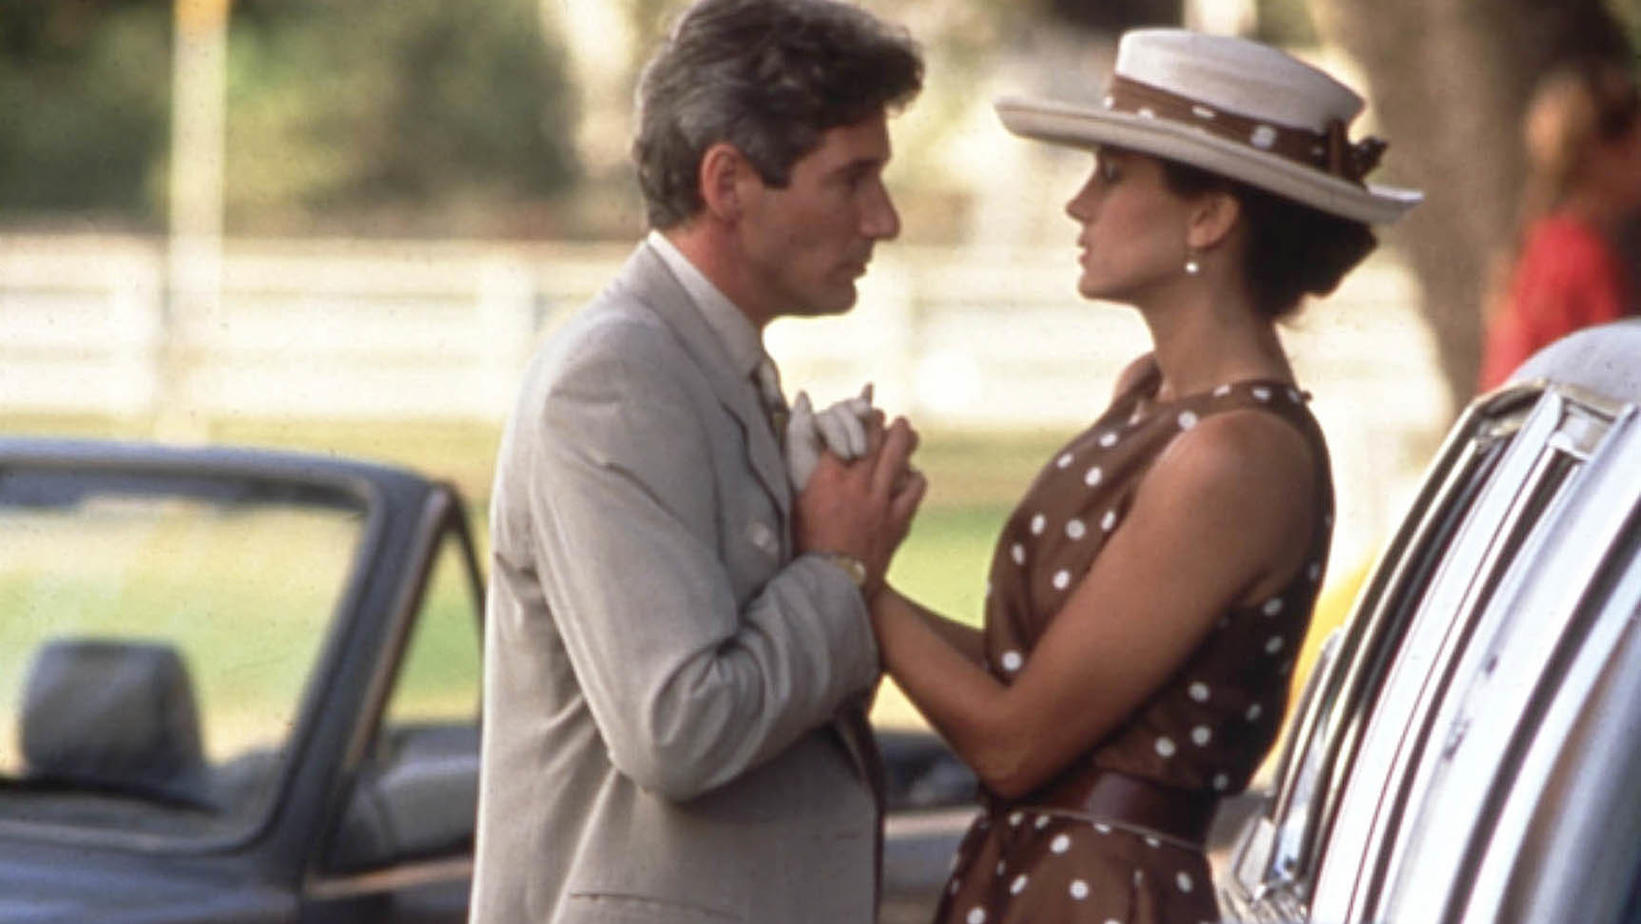 PRETTY WOMAN [US 1990] RICHARD GERE, JULIA ROBERTS PRETTY WOMAN [US 1990]  RICHARD GERE, JULIA ROBERTS     Date: 1990 (Mary Evans Picture Library) | Nur für redaktionelle Verwendung., Keine Weitergabe an Wiederverkäufer.